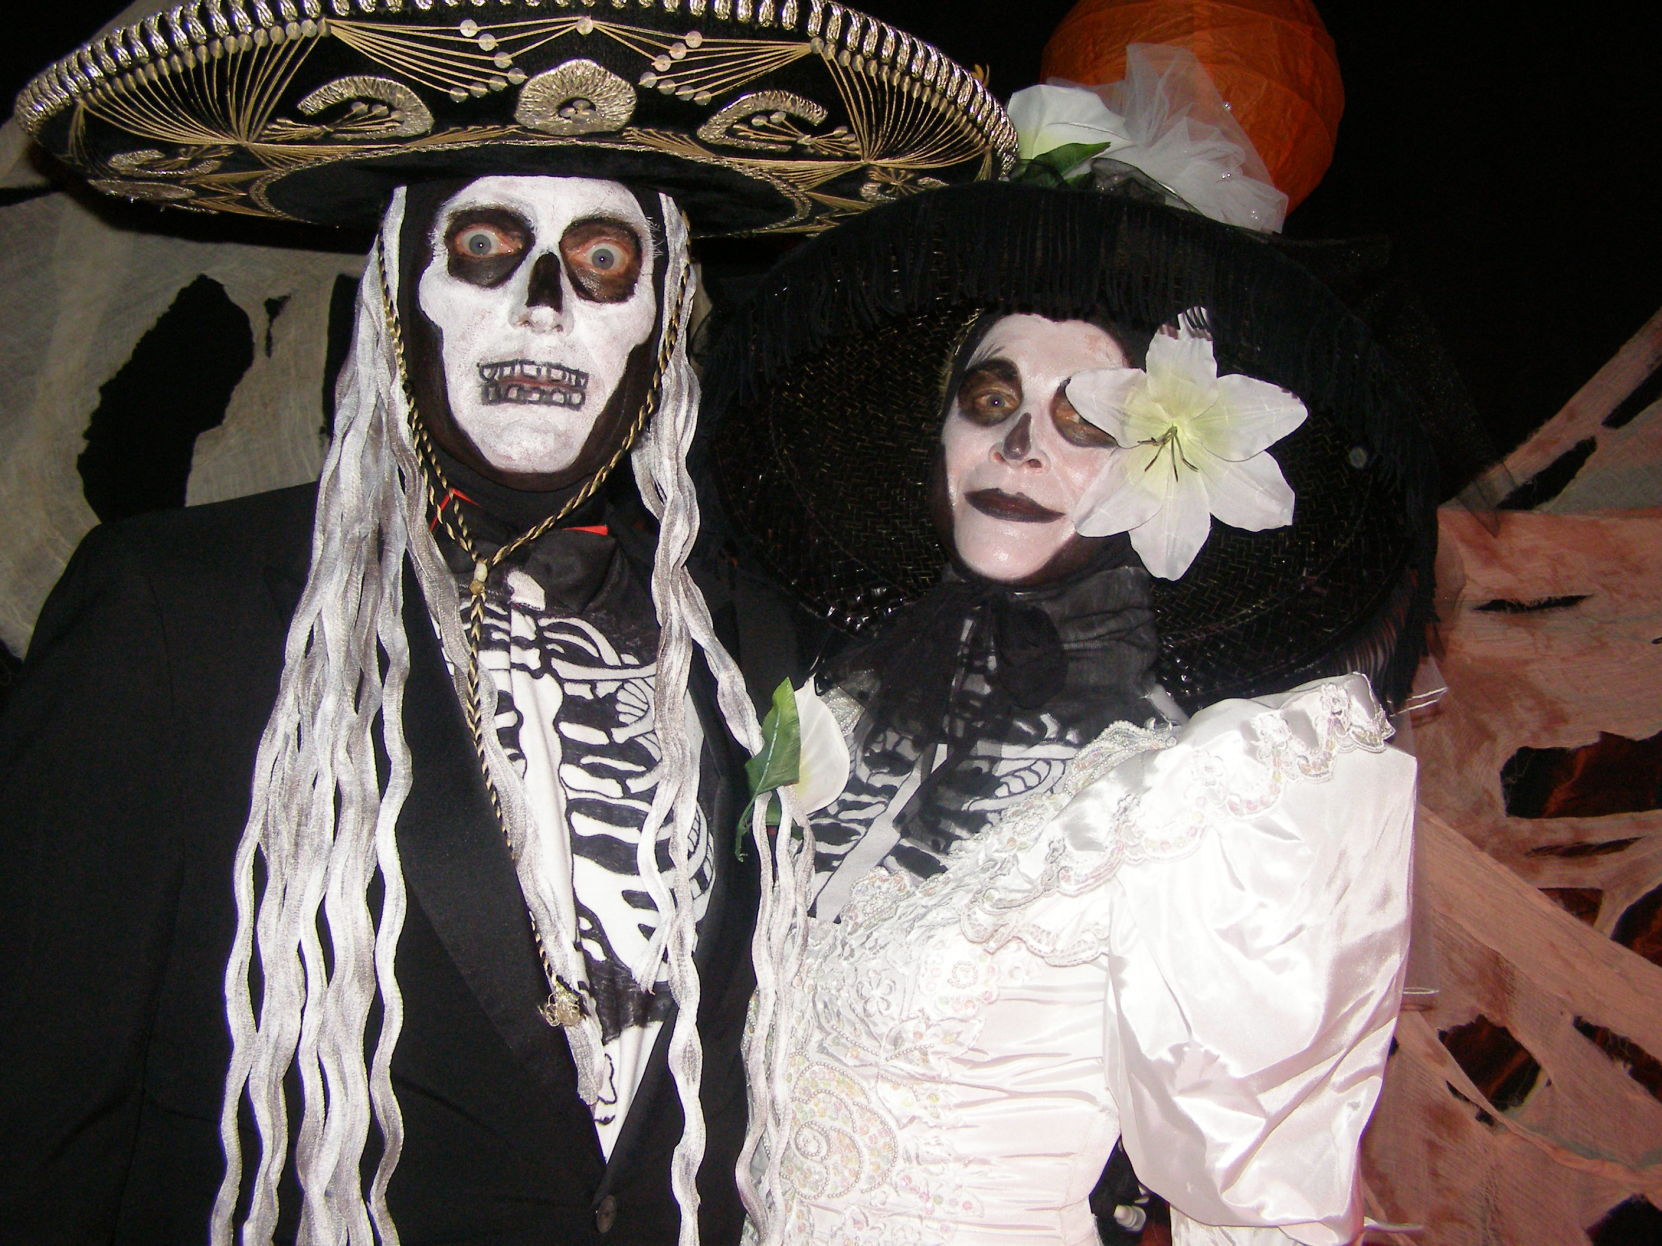 halloween 052.jpg  sc 1 st  Times-News & Is your costume ready? Elaborate Halloween party returns to Ketchum ...